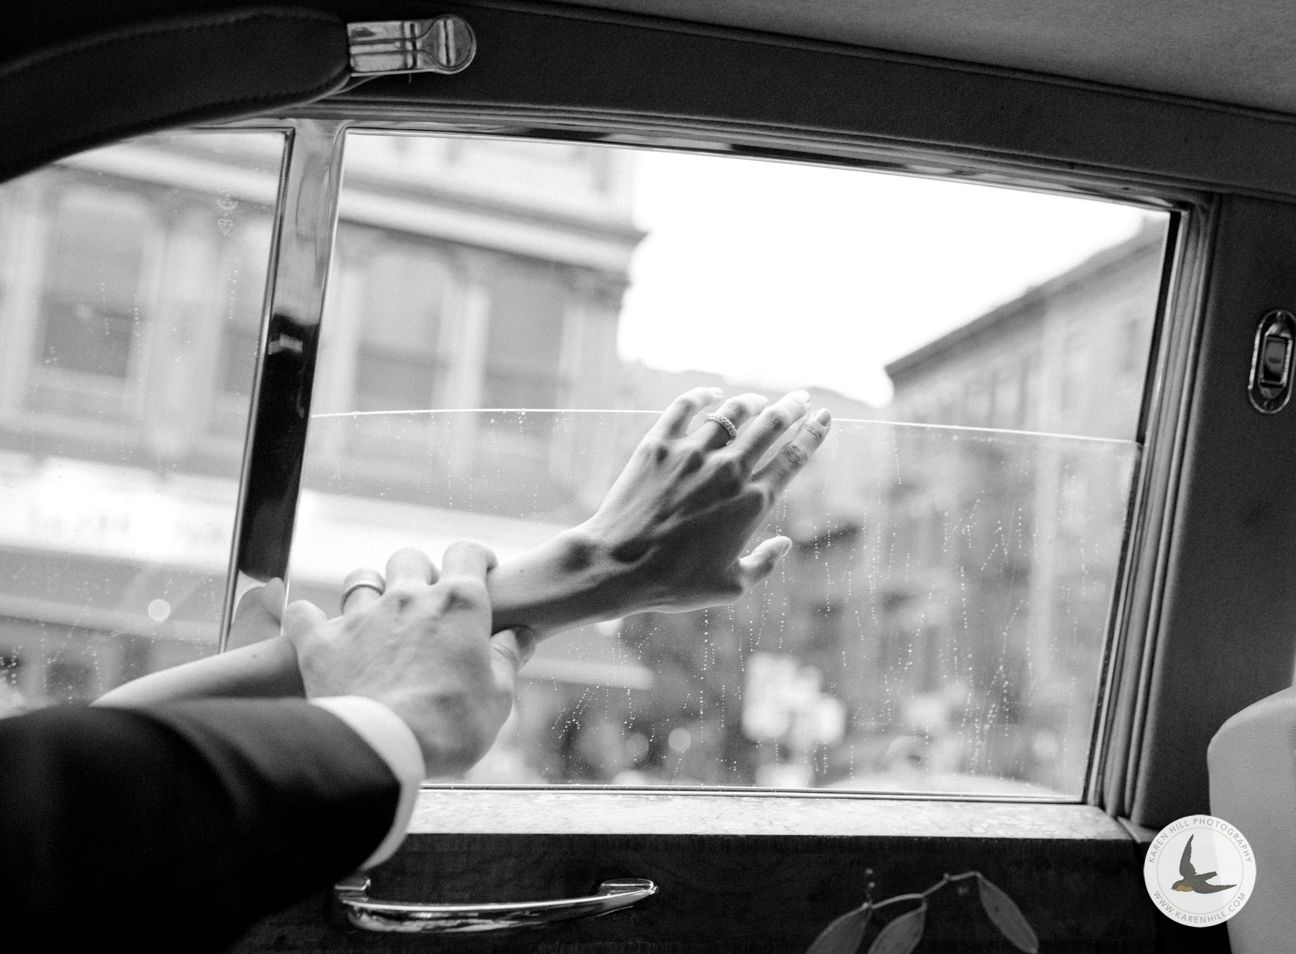 detail photo of bride and grooms wedding rings in wedding car on a rainy day in NYC